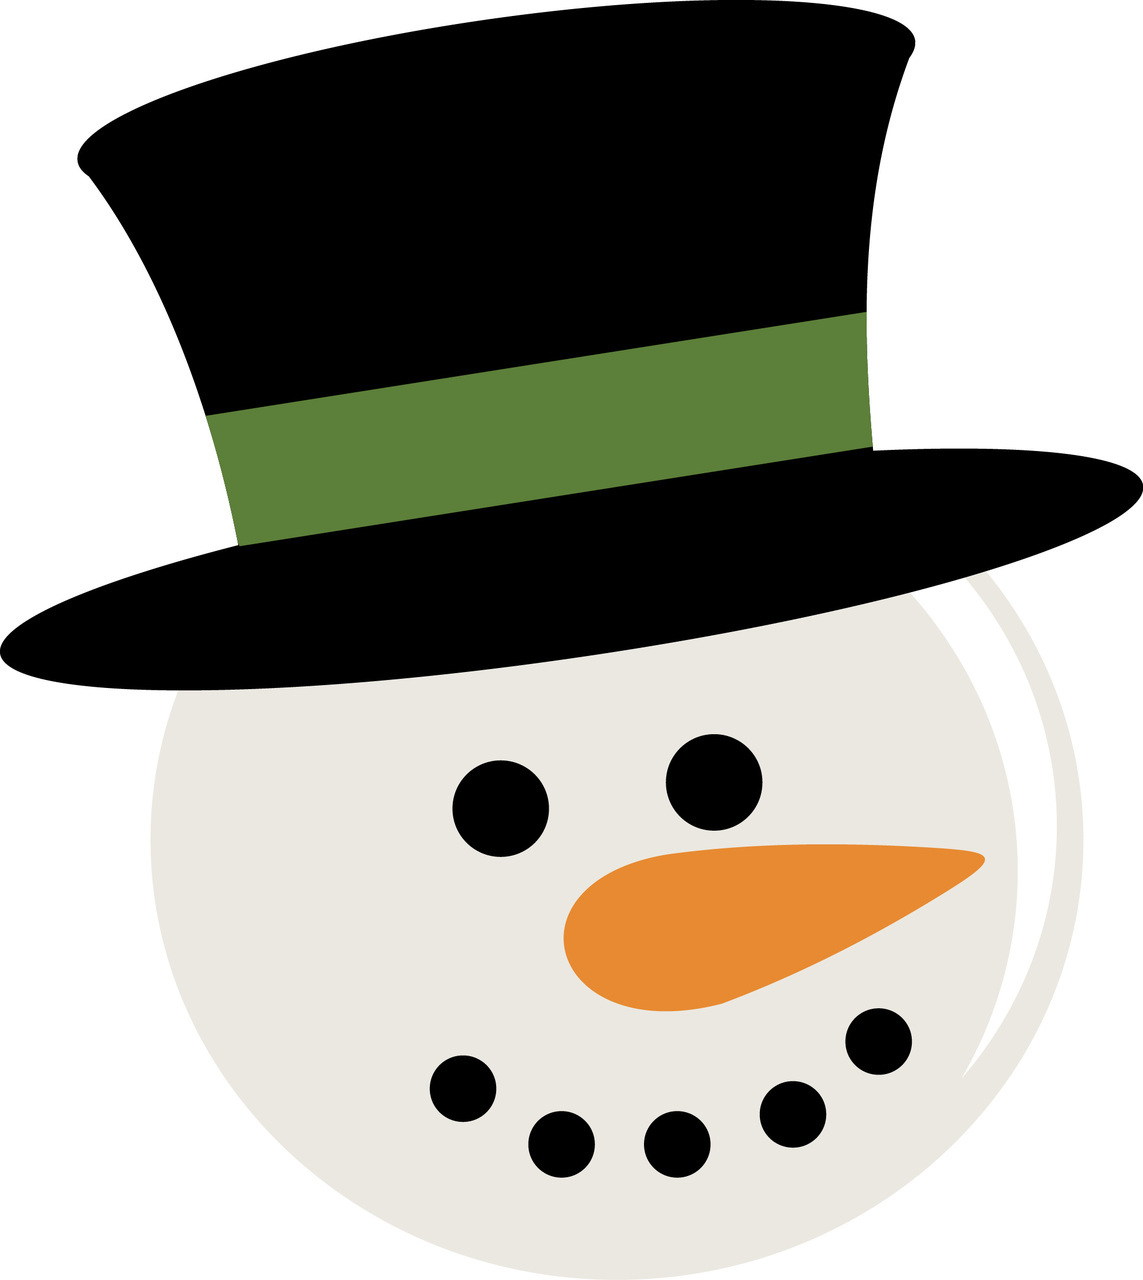 1143x1280 Free Printable Snowman Face Template Search Results